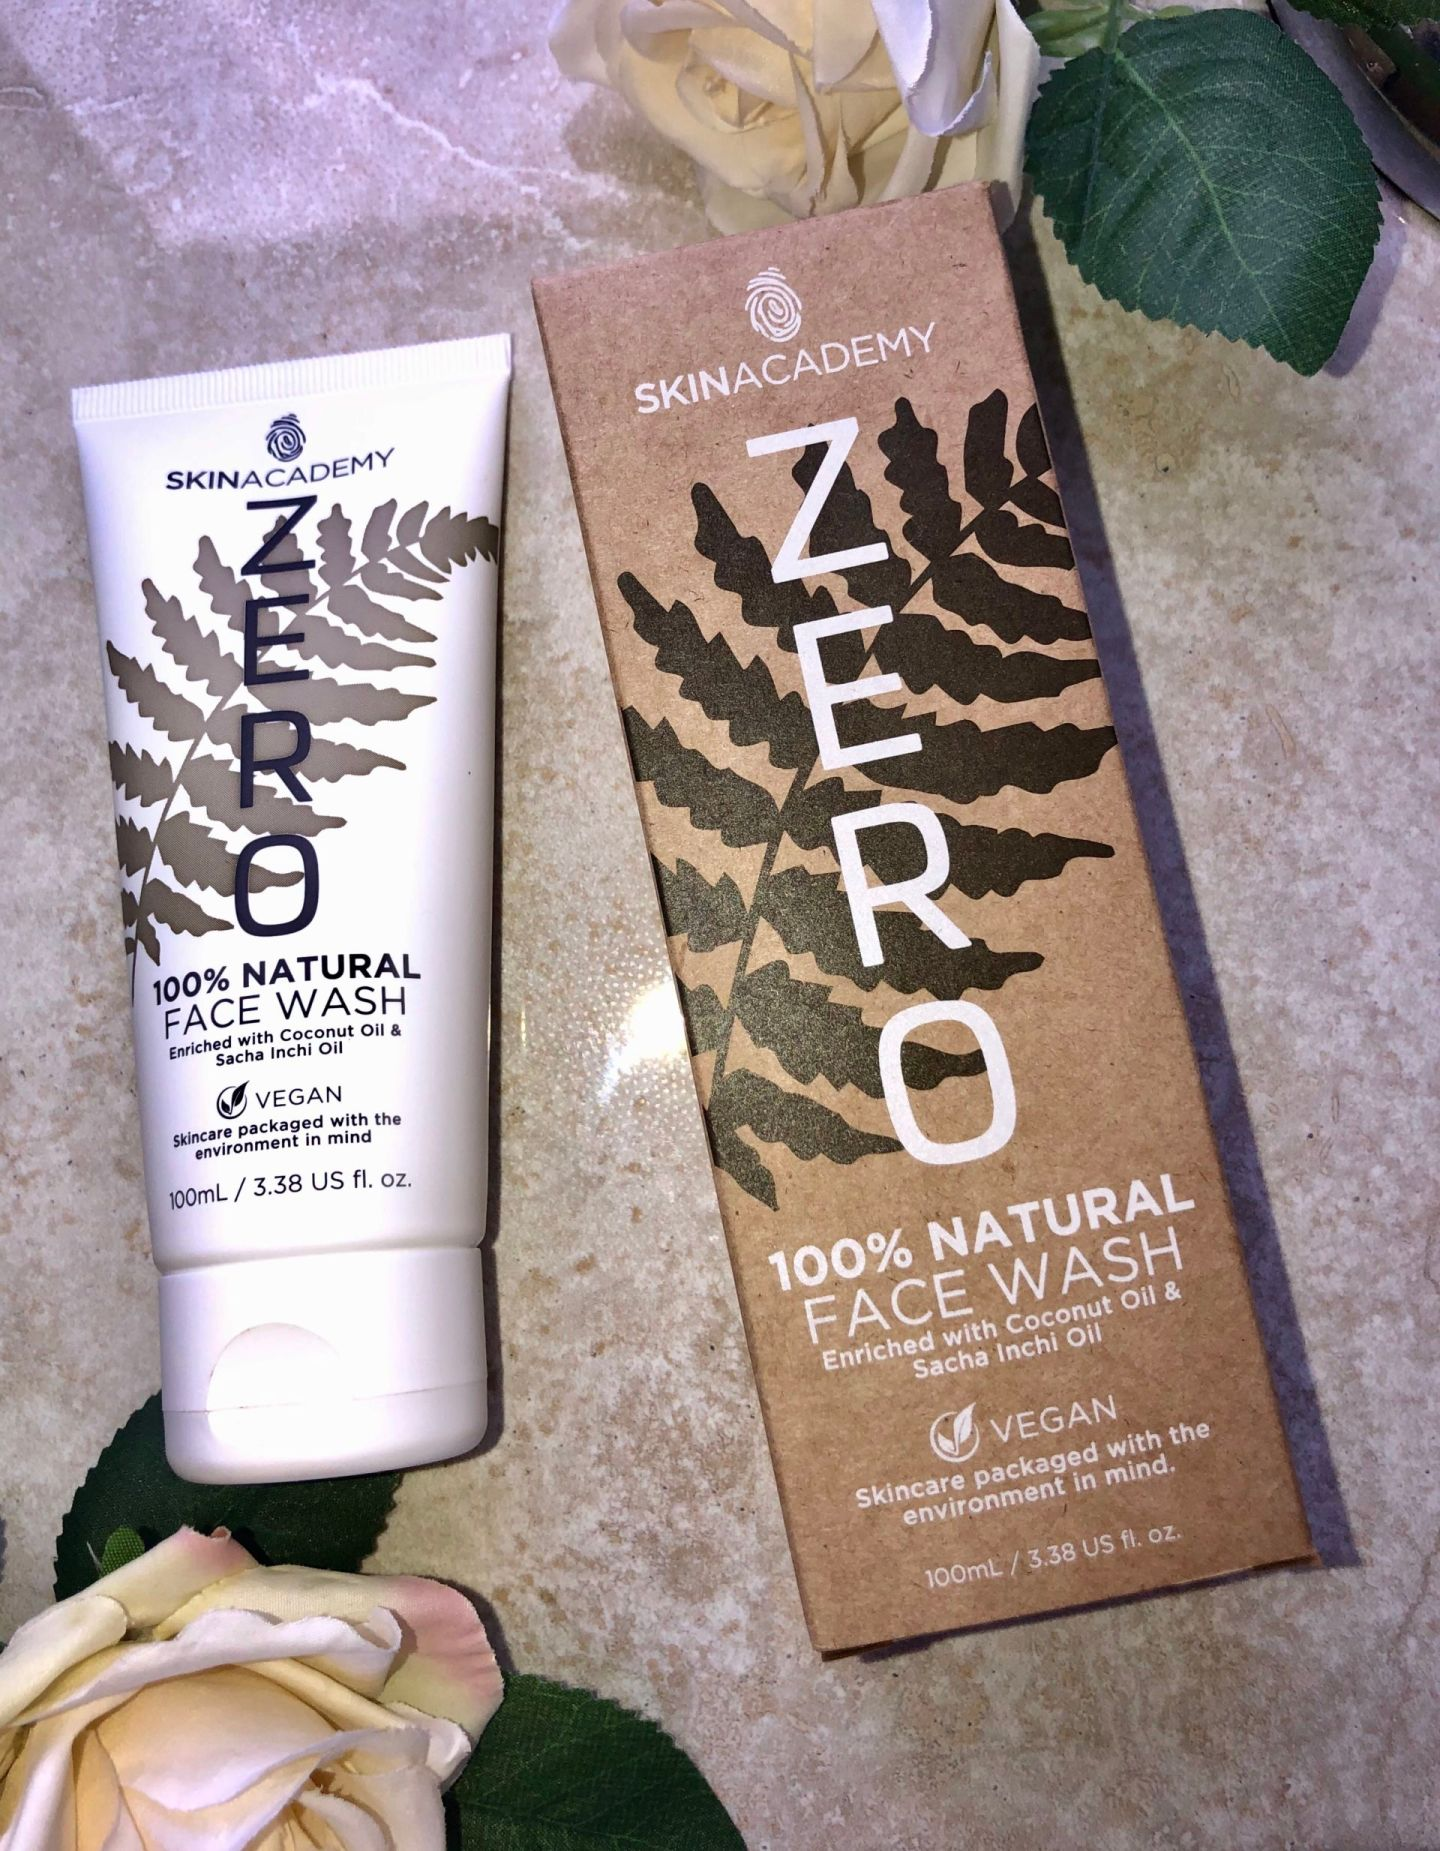 Skin Academy ZERO Skincare Review - FACE WASH